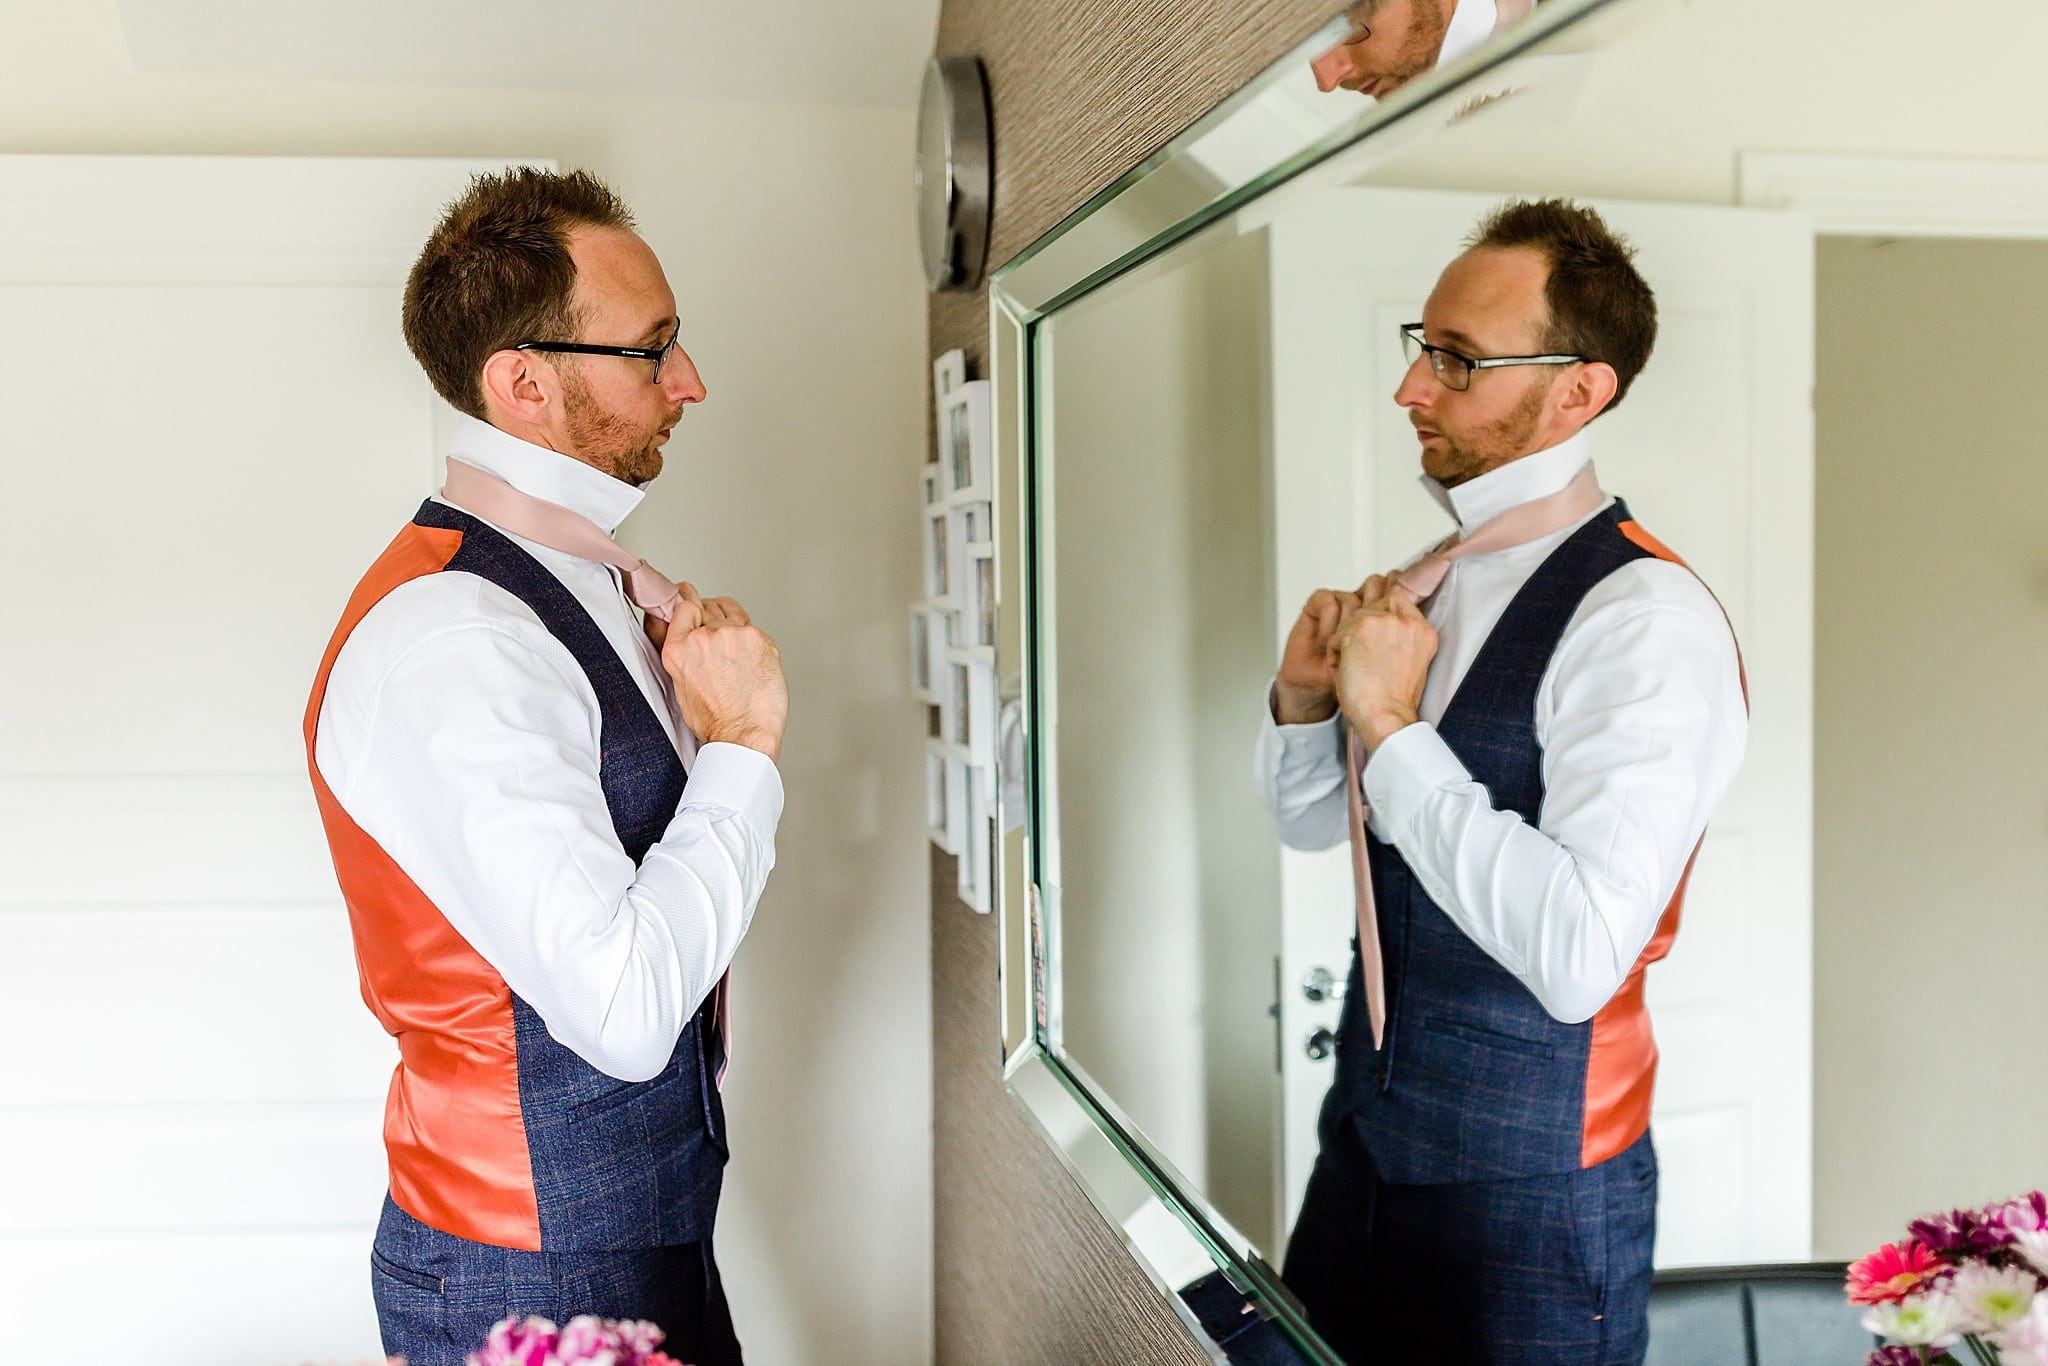 Groom adjusts his tie in mirror before his wedding at Carriage Hall